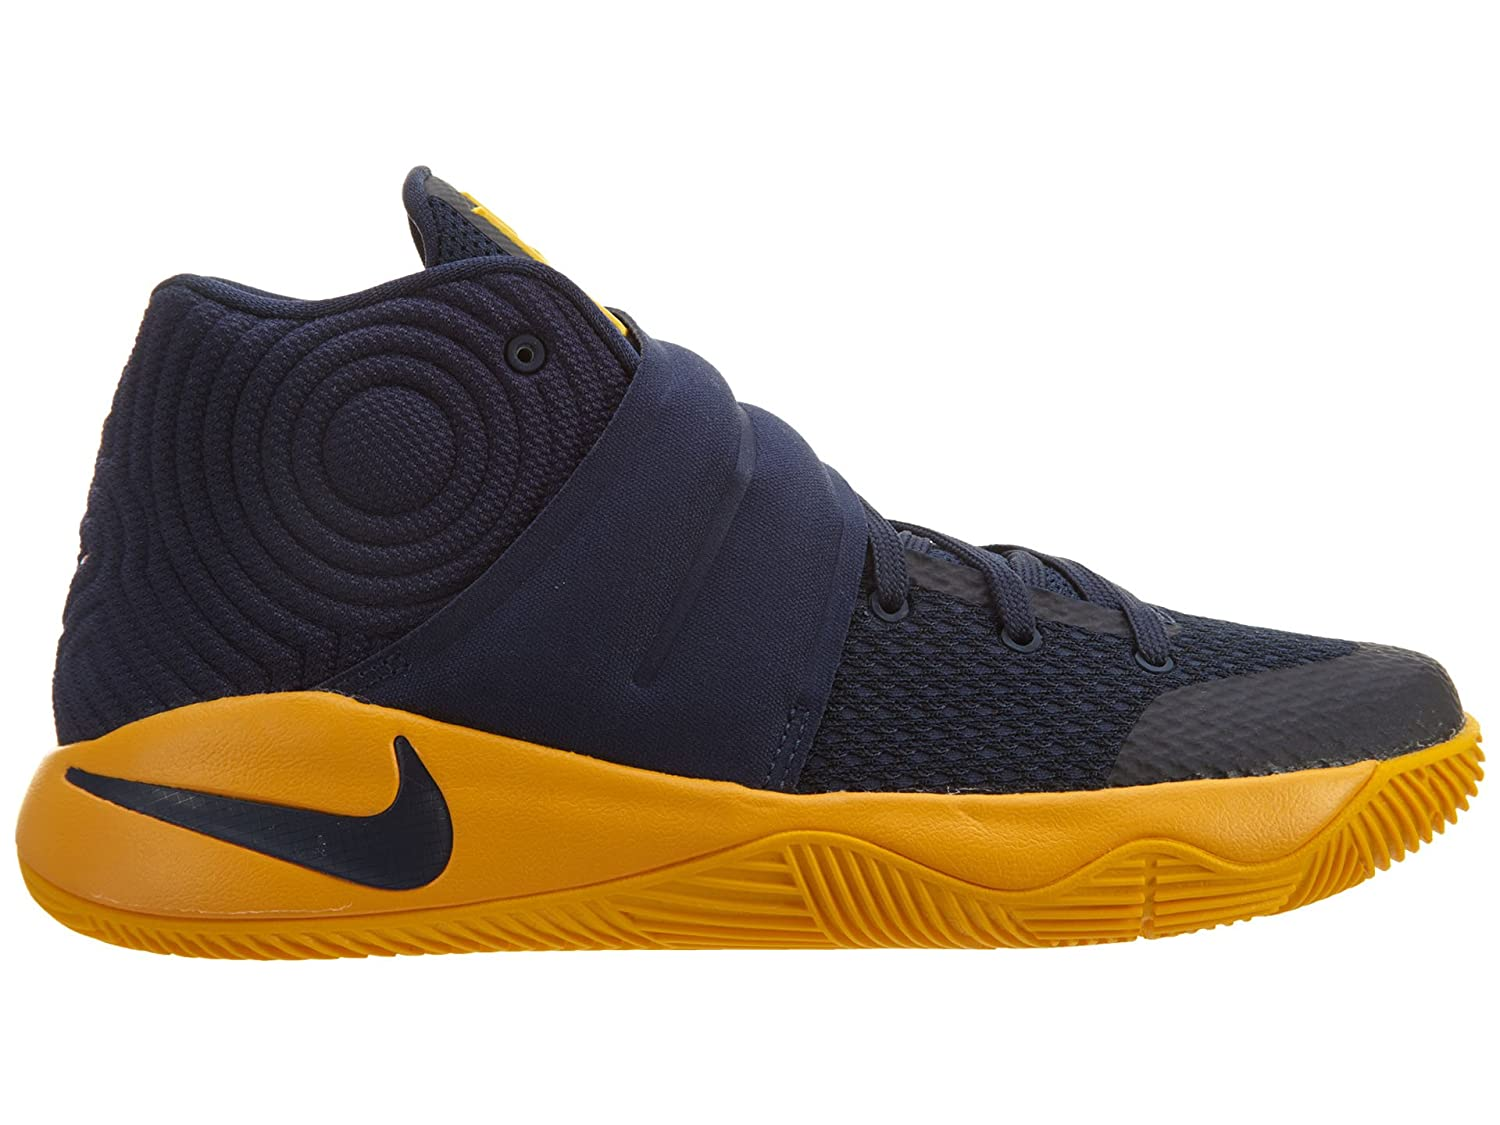 Nike Kyrie 2 Midnight Navy/University Gold/University Red/Midnight Navy Cheap Fit